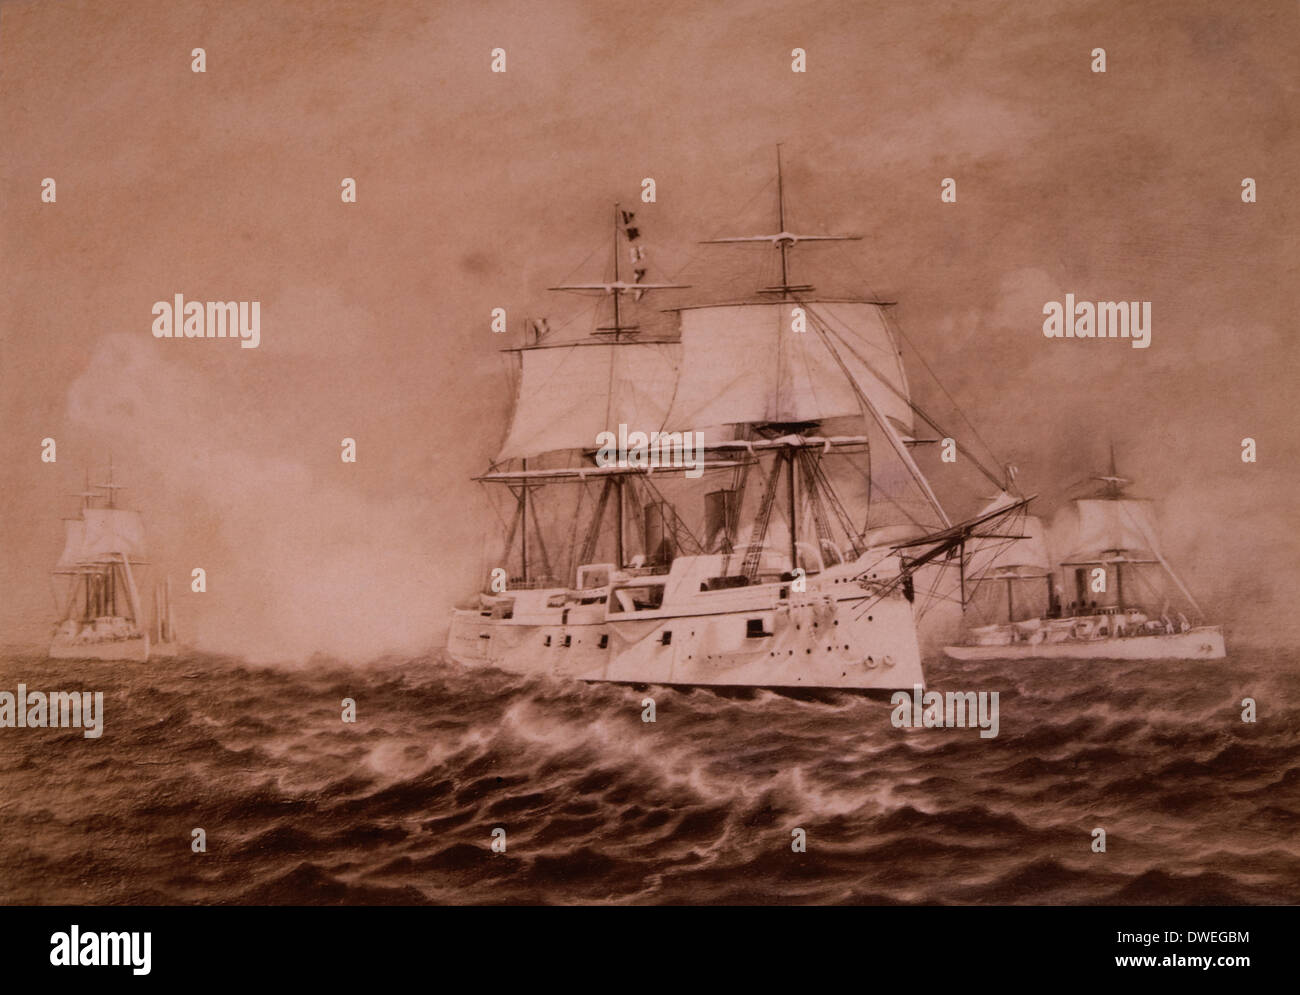 United States Navy Cruiser, U.S.S. Chicago with the Great White Fleet, Circa 1890 - Stock Image